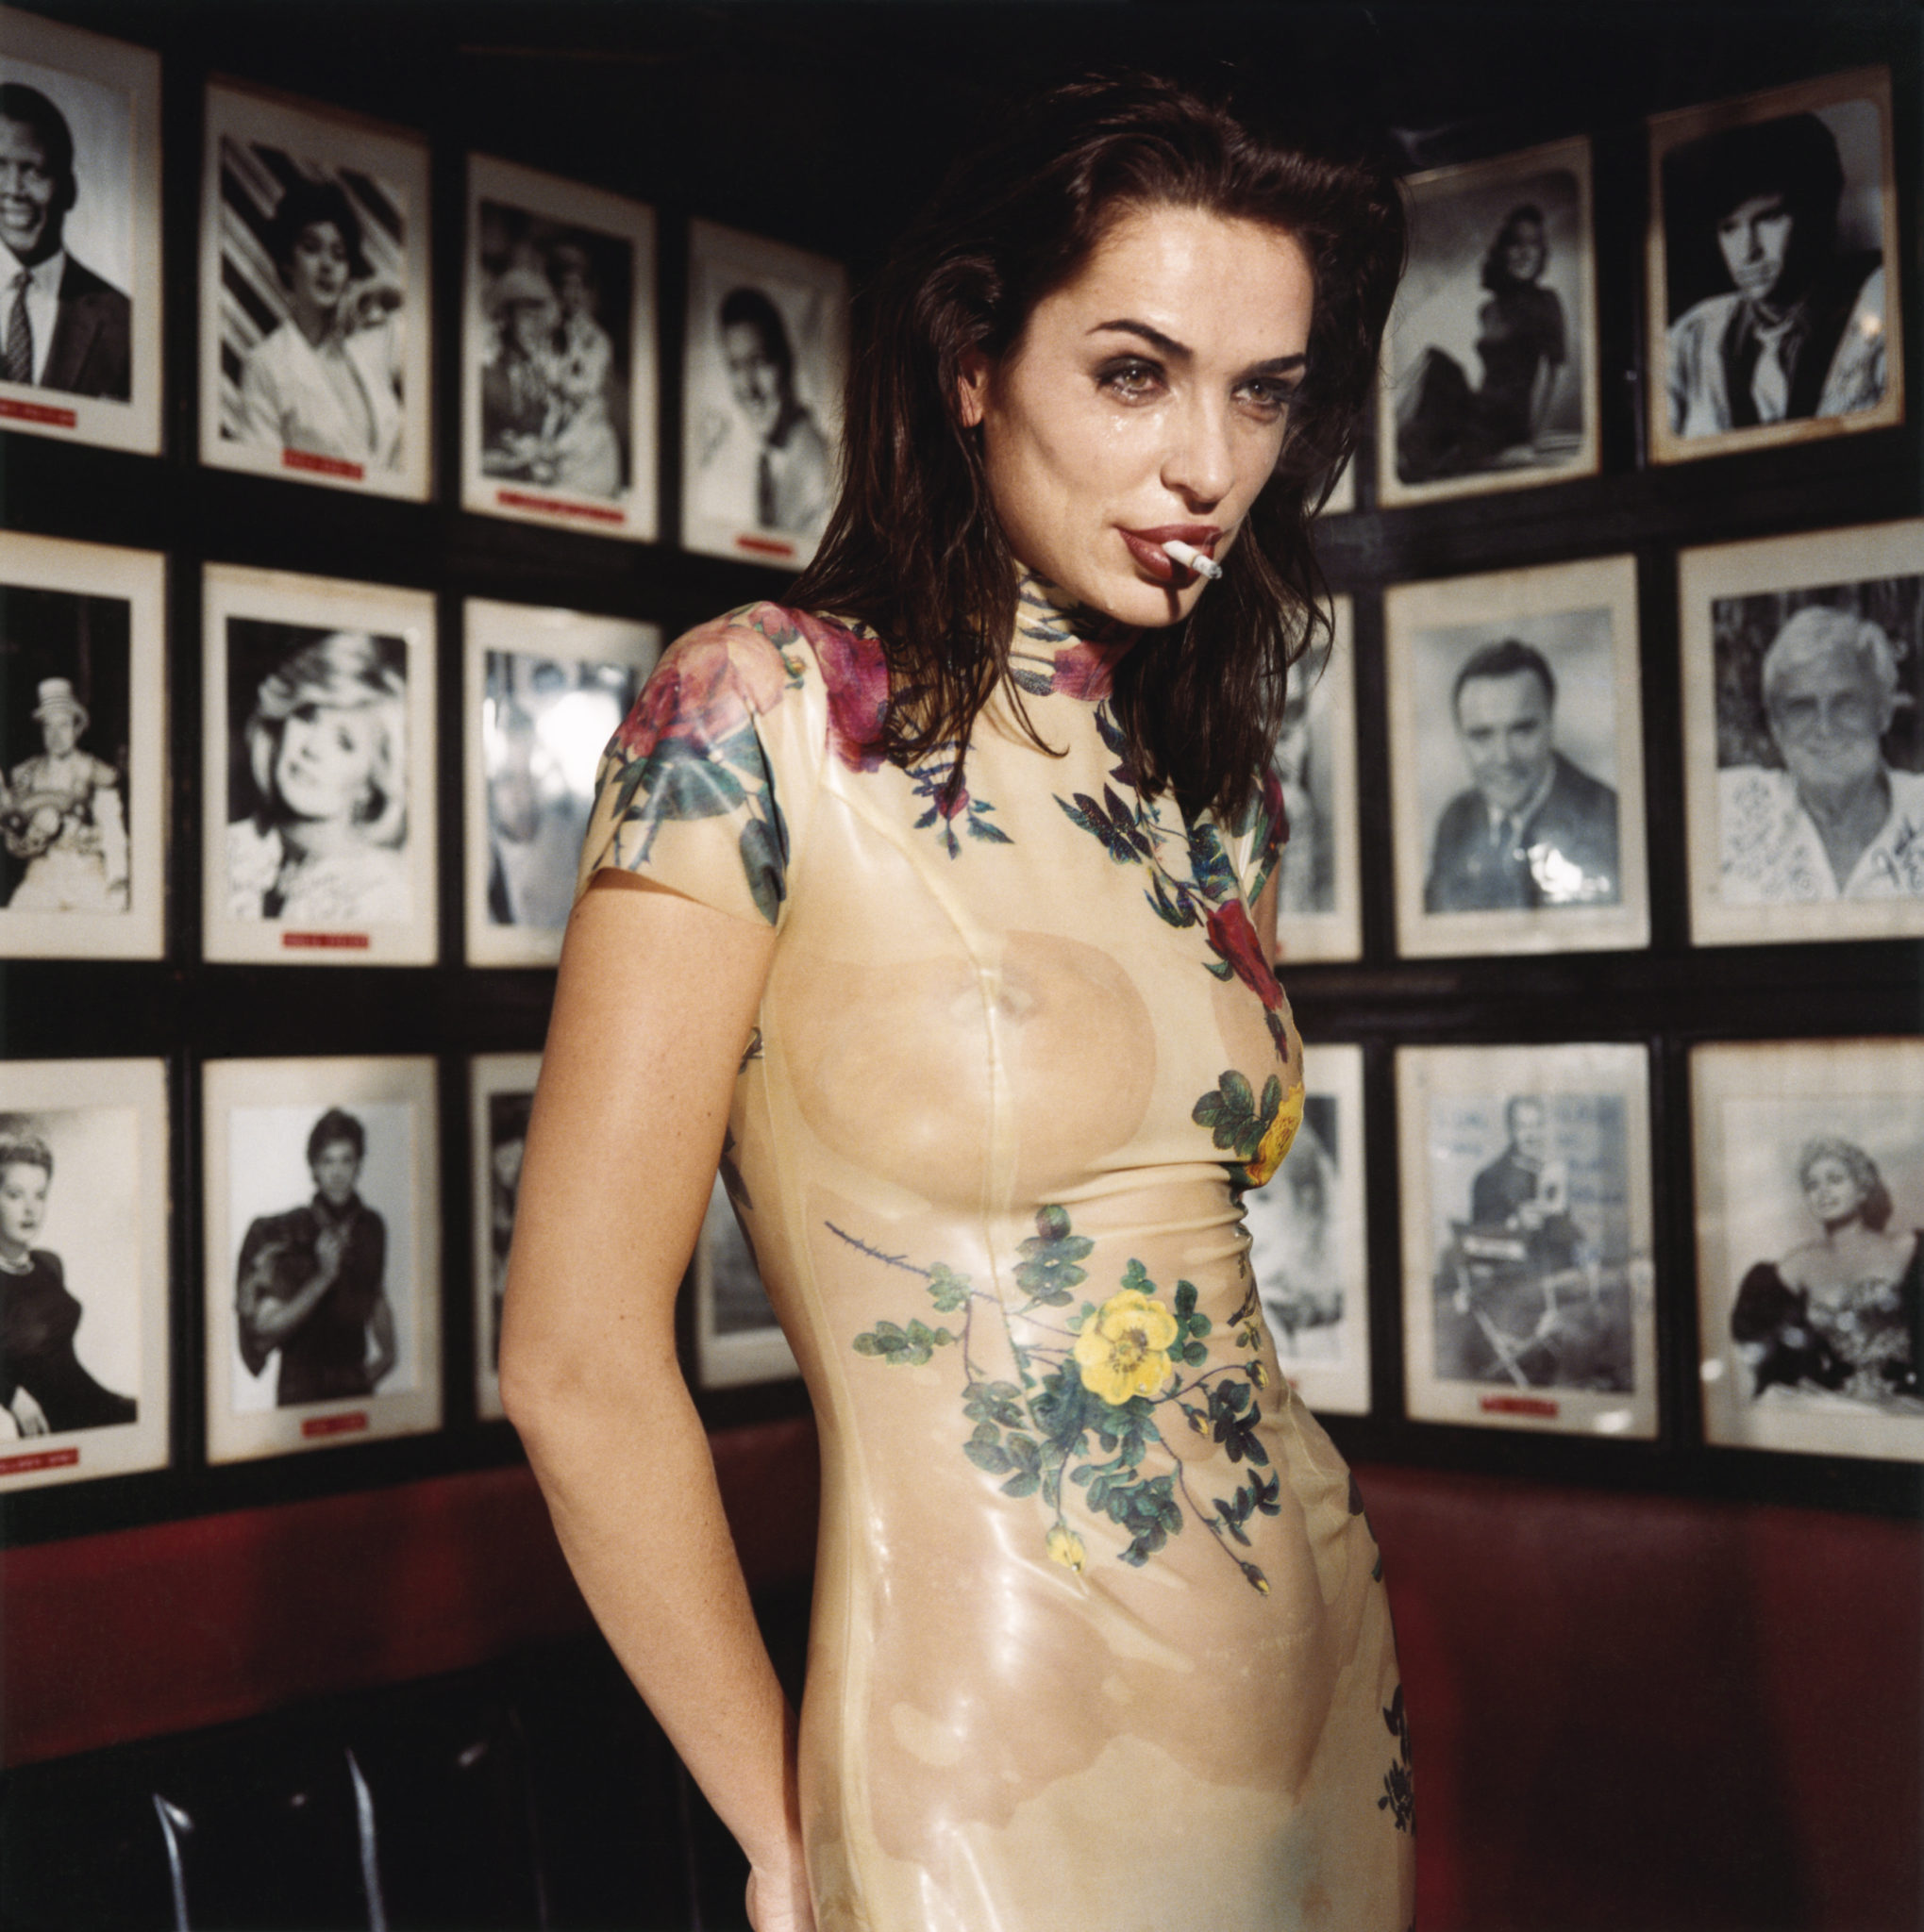 Bettina Rheims